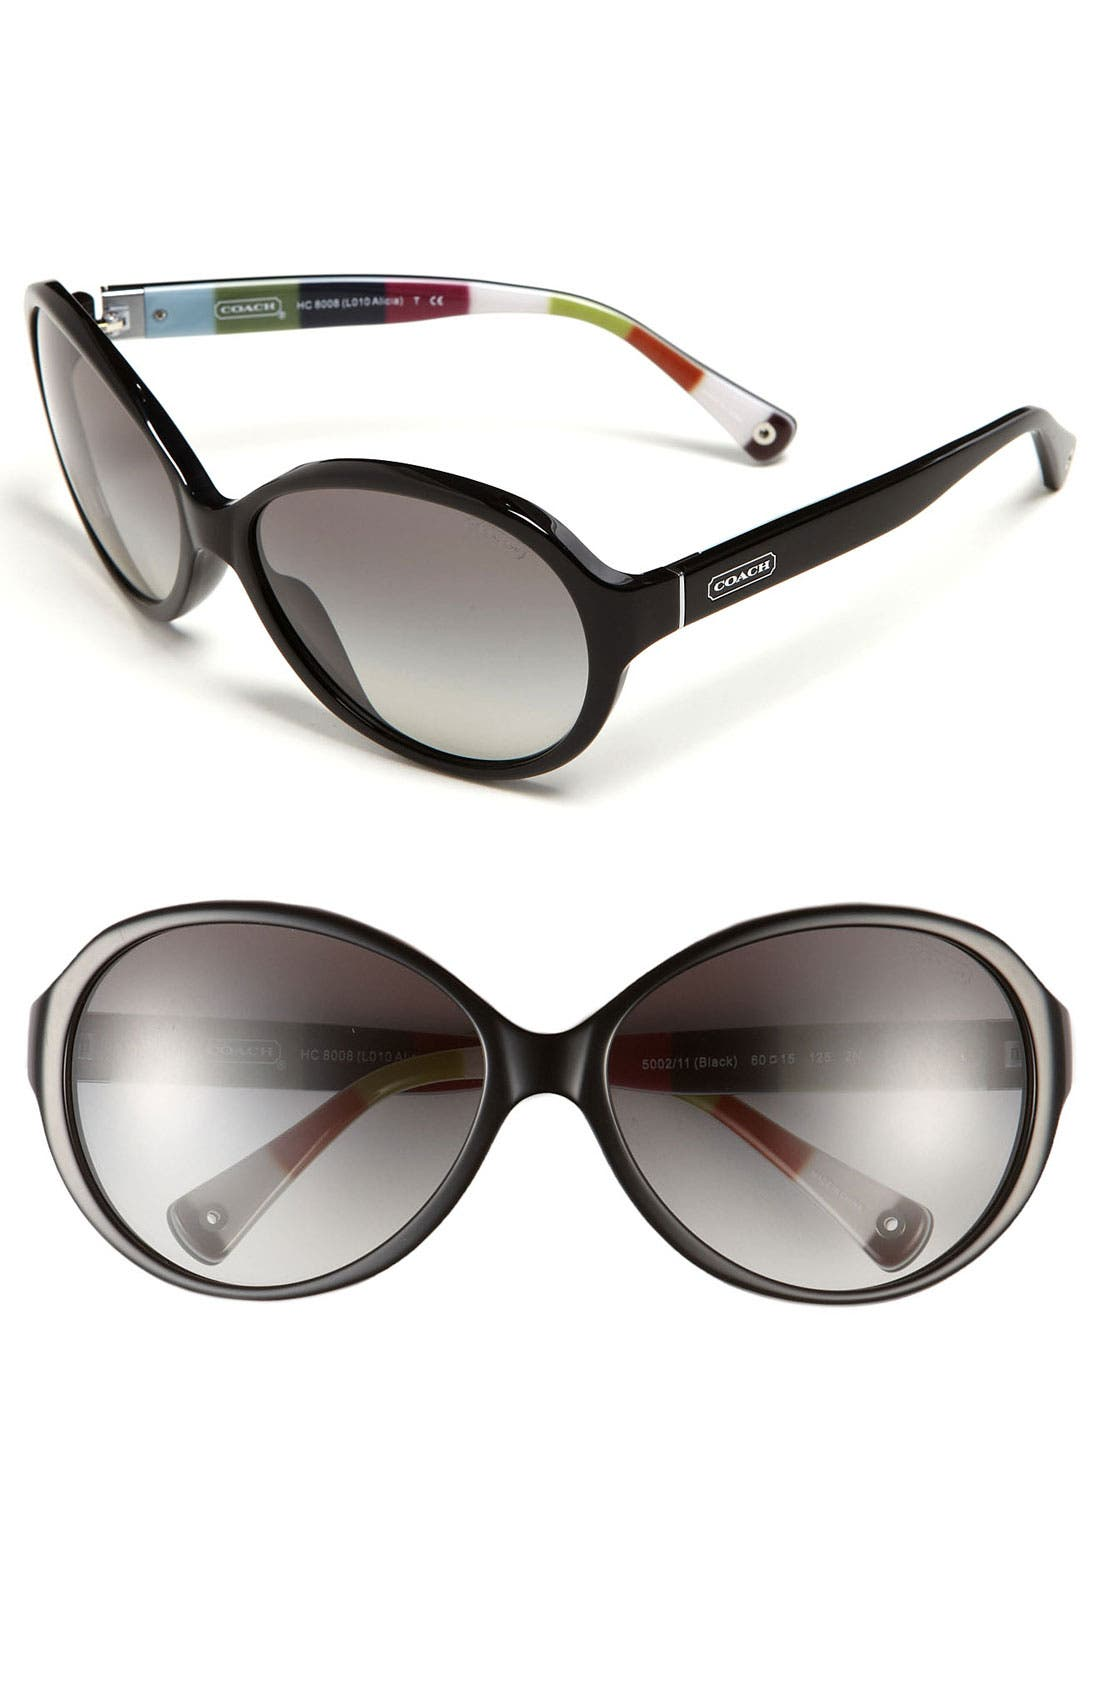 Main Image - COACH Gradient Lens Sunglasses